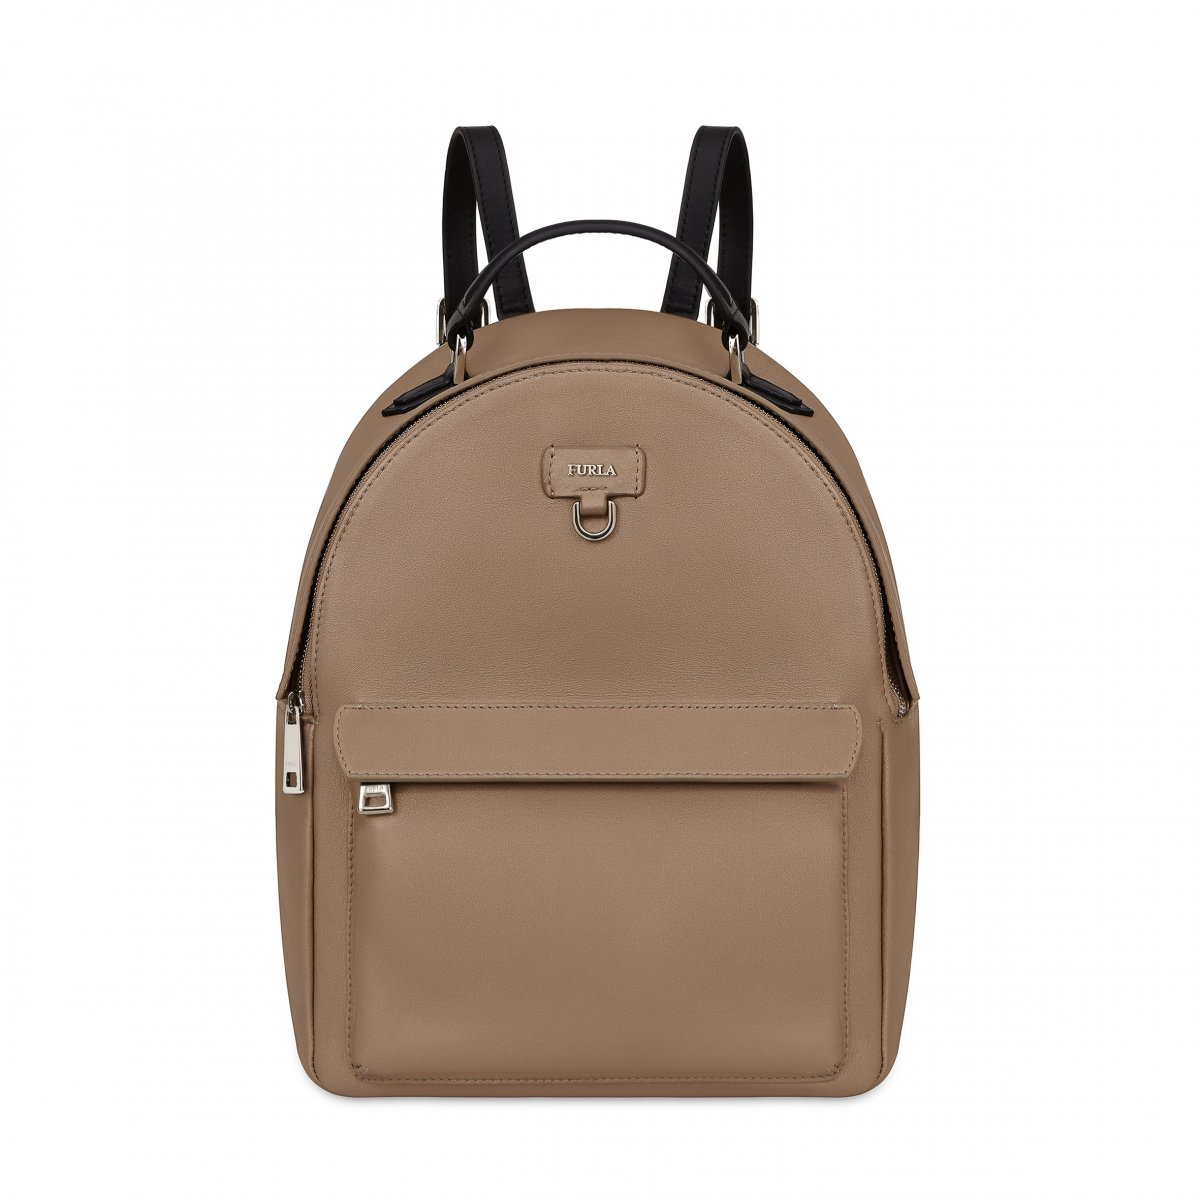 Ruksak FURLA FAVOLA S BACKPACK